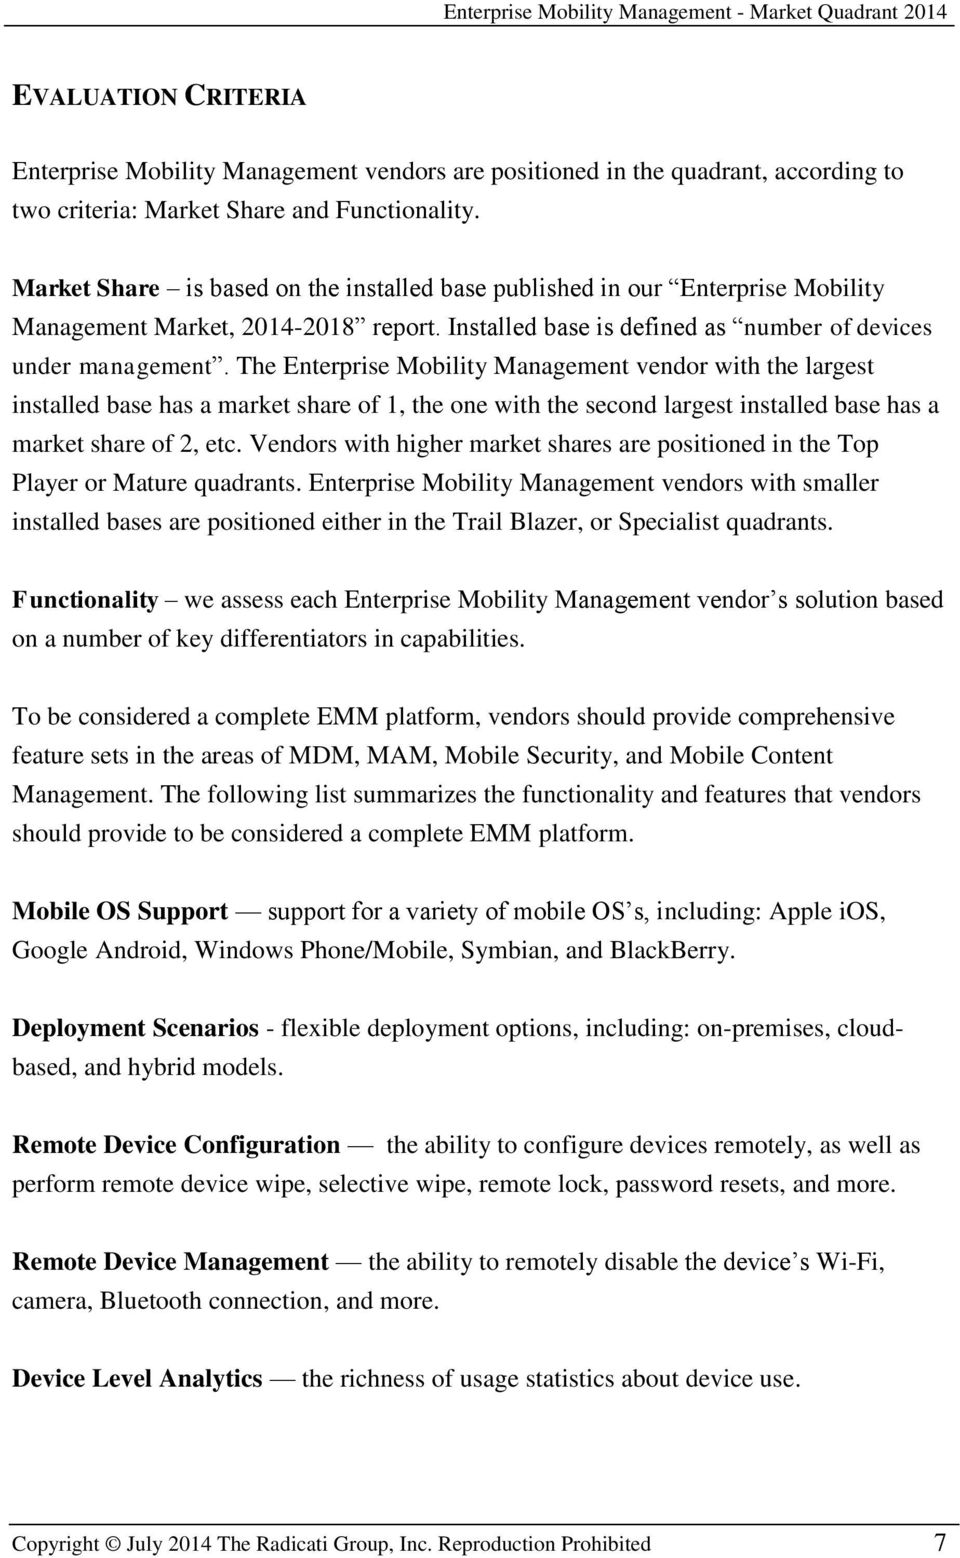 The Enterprise Mobility Management vendor with the largest installed base has a market share of 1, the one with the second largest installed base has a market share of 2, etc.